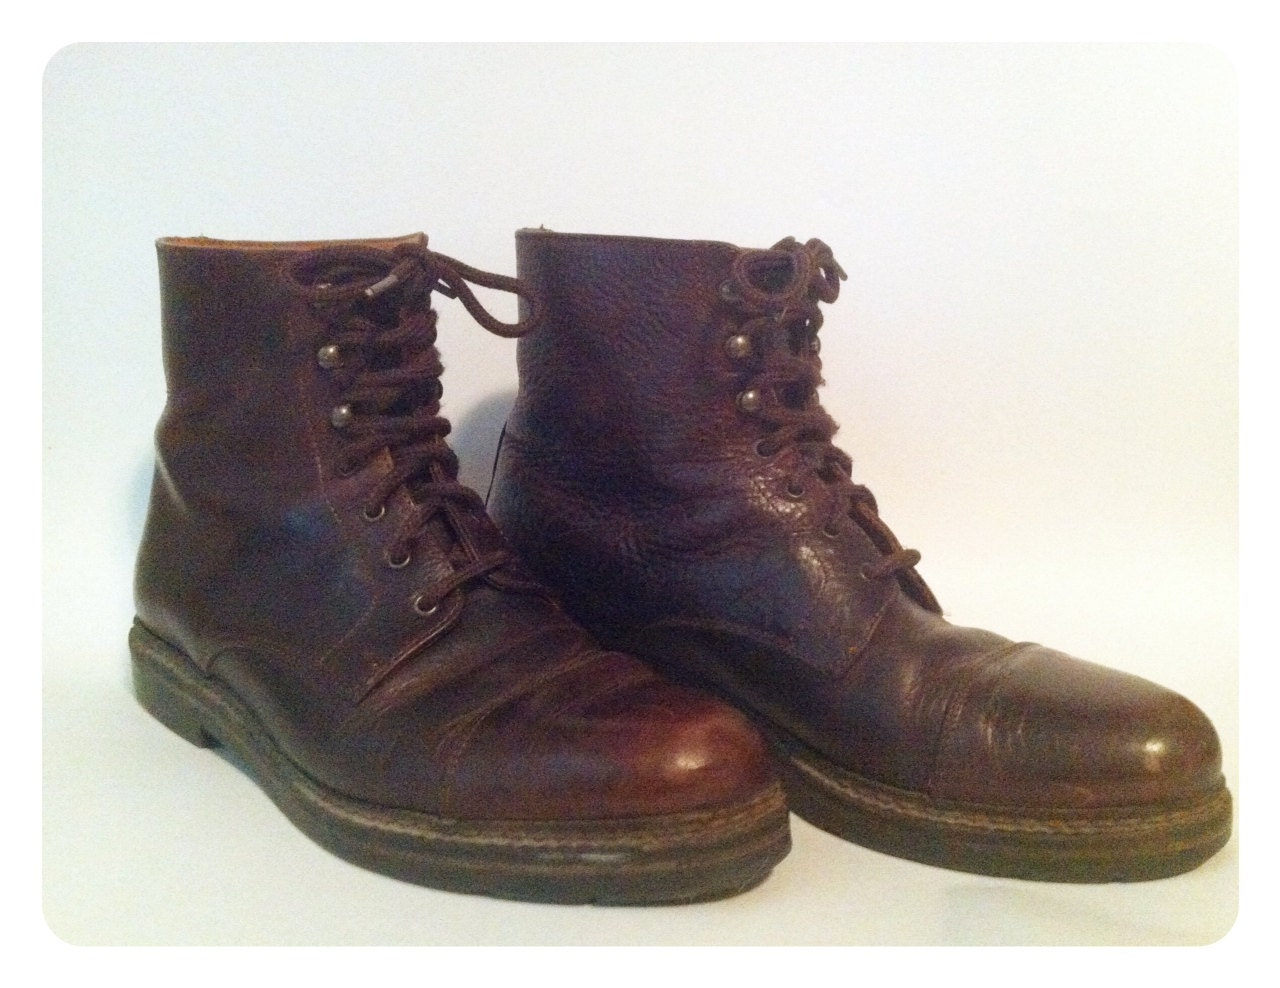 vintage brown leather work boots s size 8 5